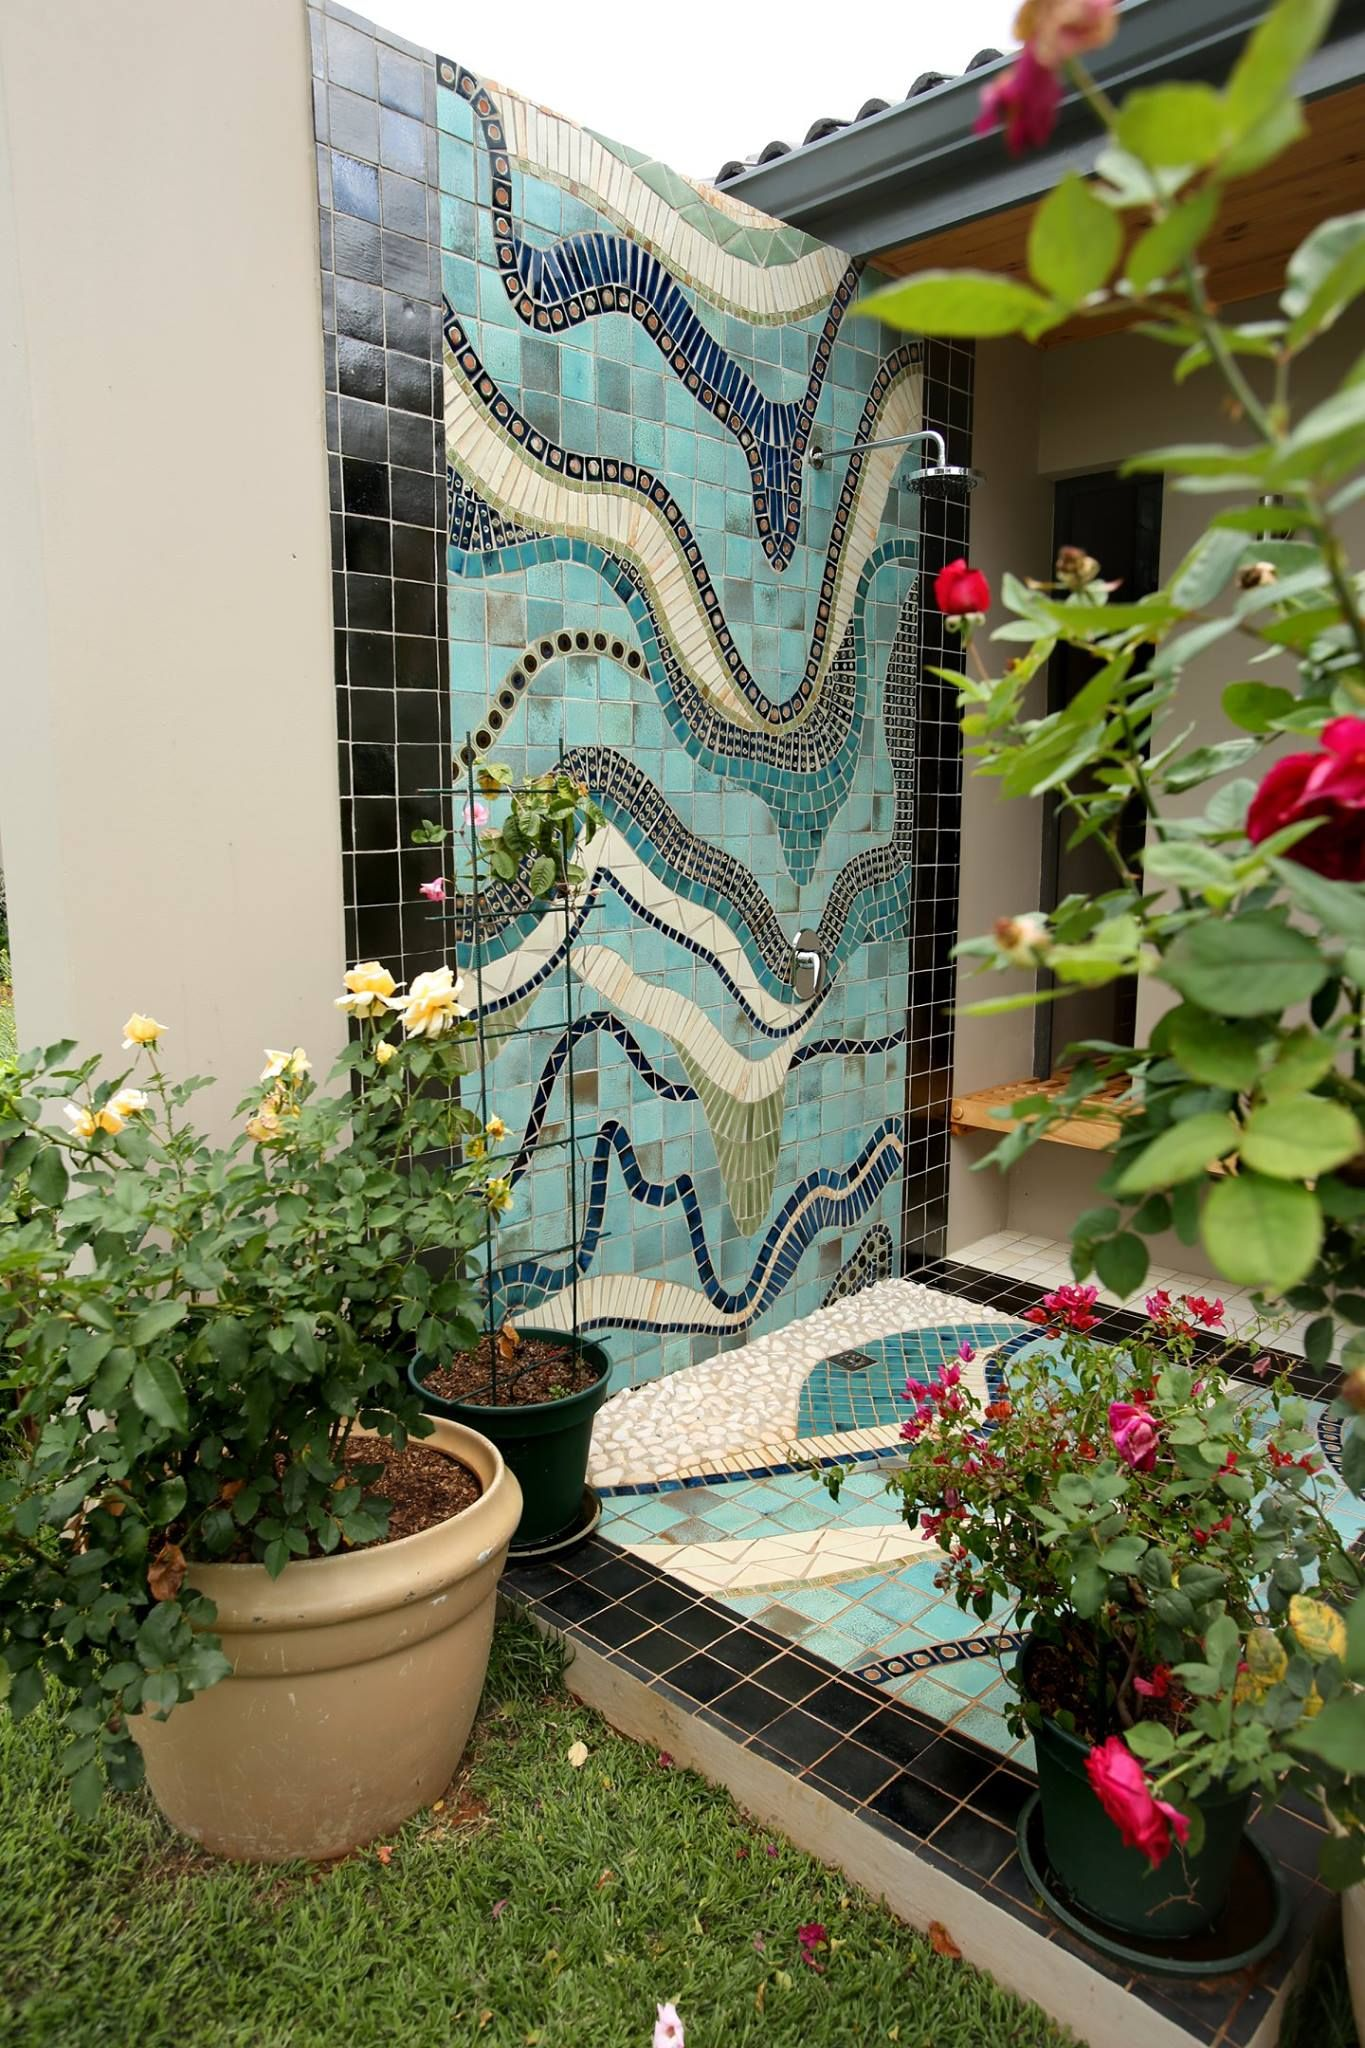 Outdoor Decorative Tiles For Walls Simple This Outdoor Shower Gives An Abstract Impression Of Water Flowing Design Decoration